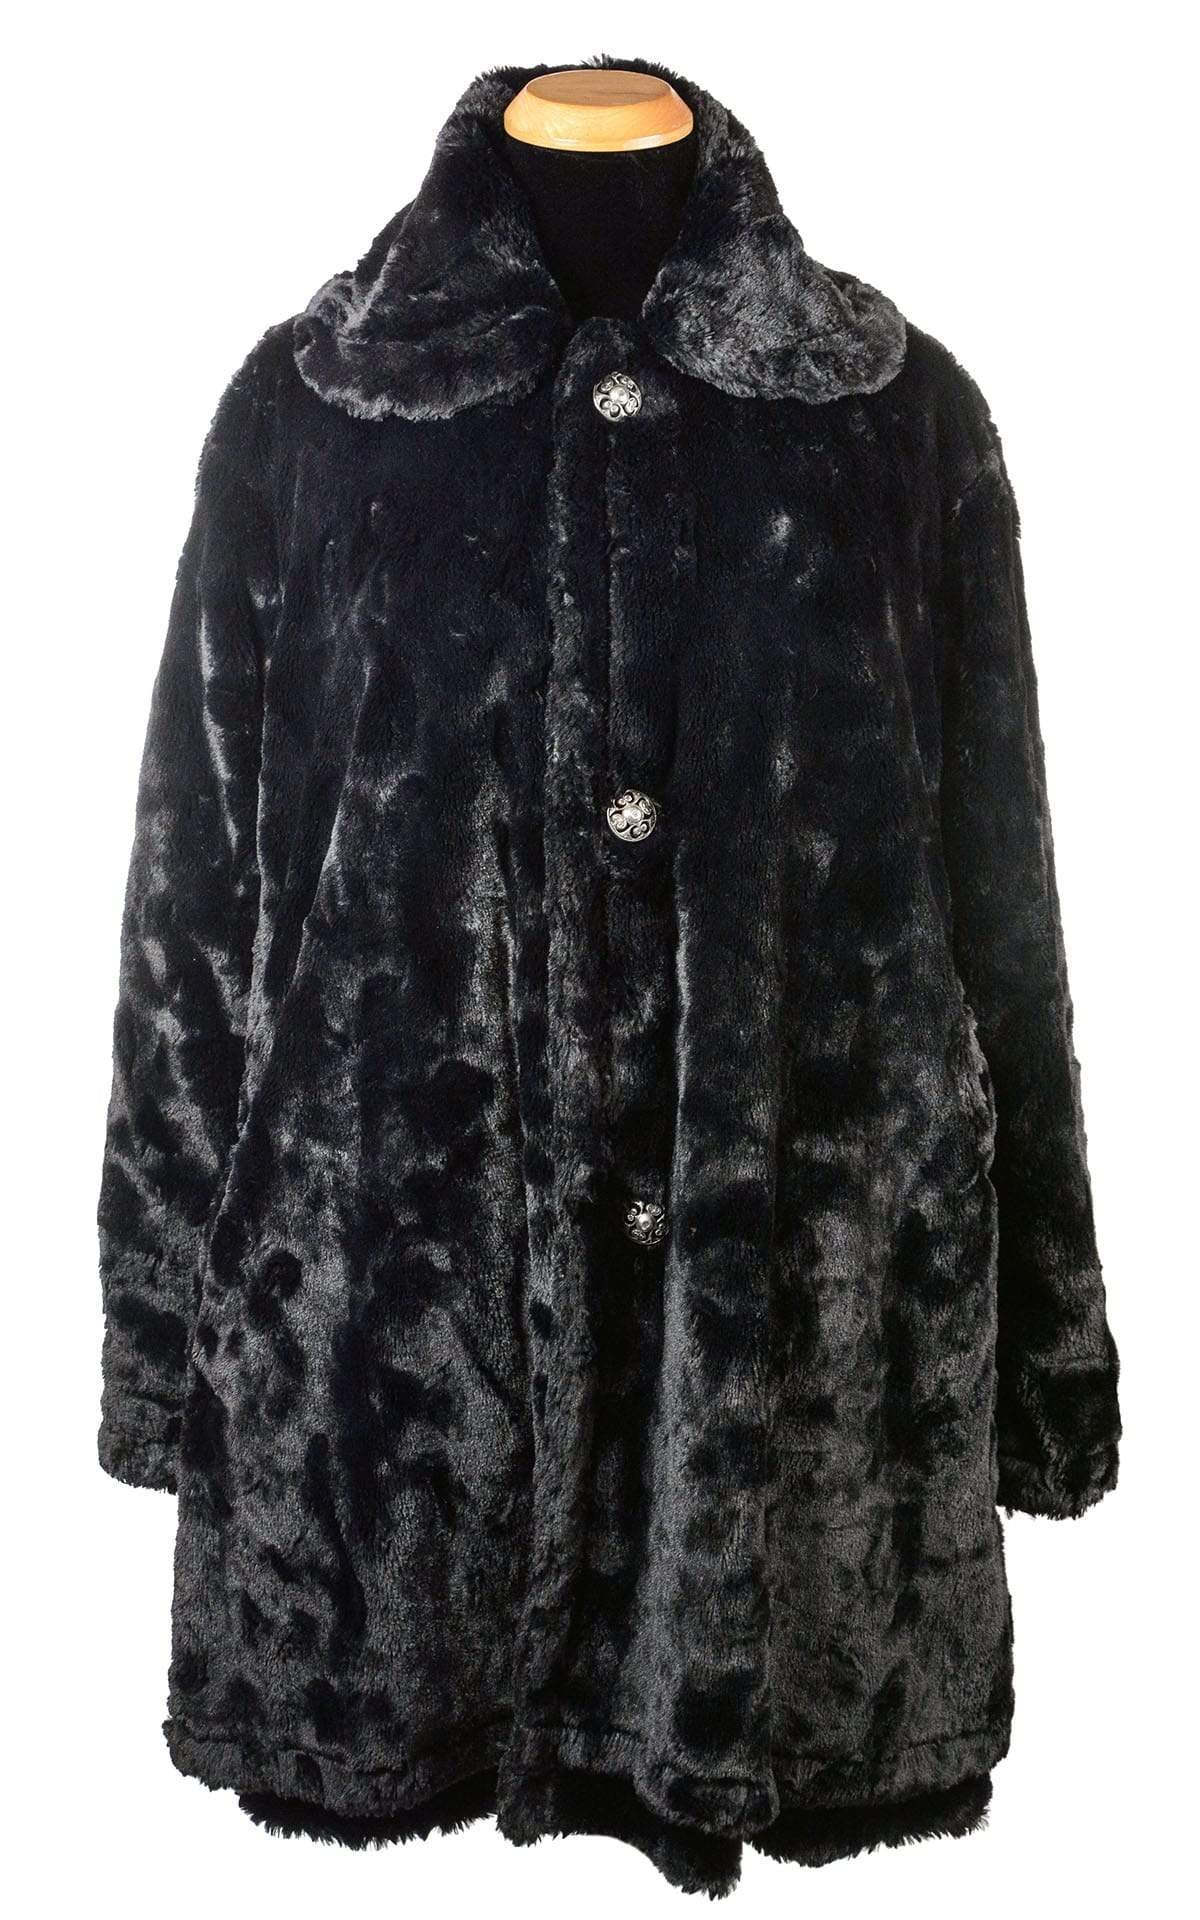 Garland Swing Coat - Cuddly Faux Fur in Black Seal, Solid (Only One Medium!)